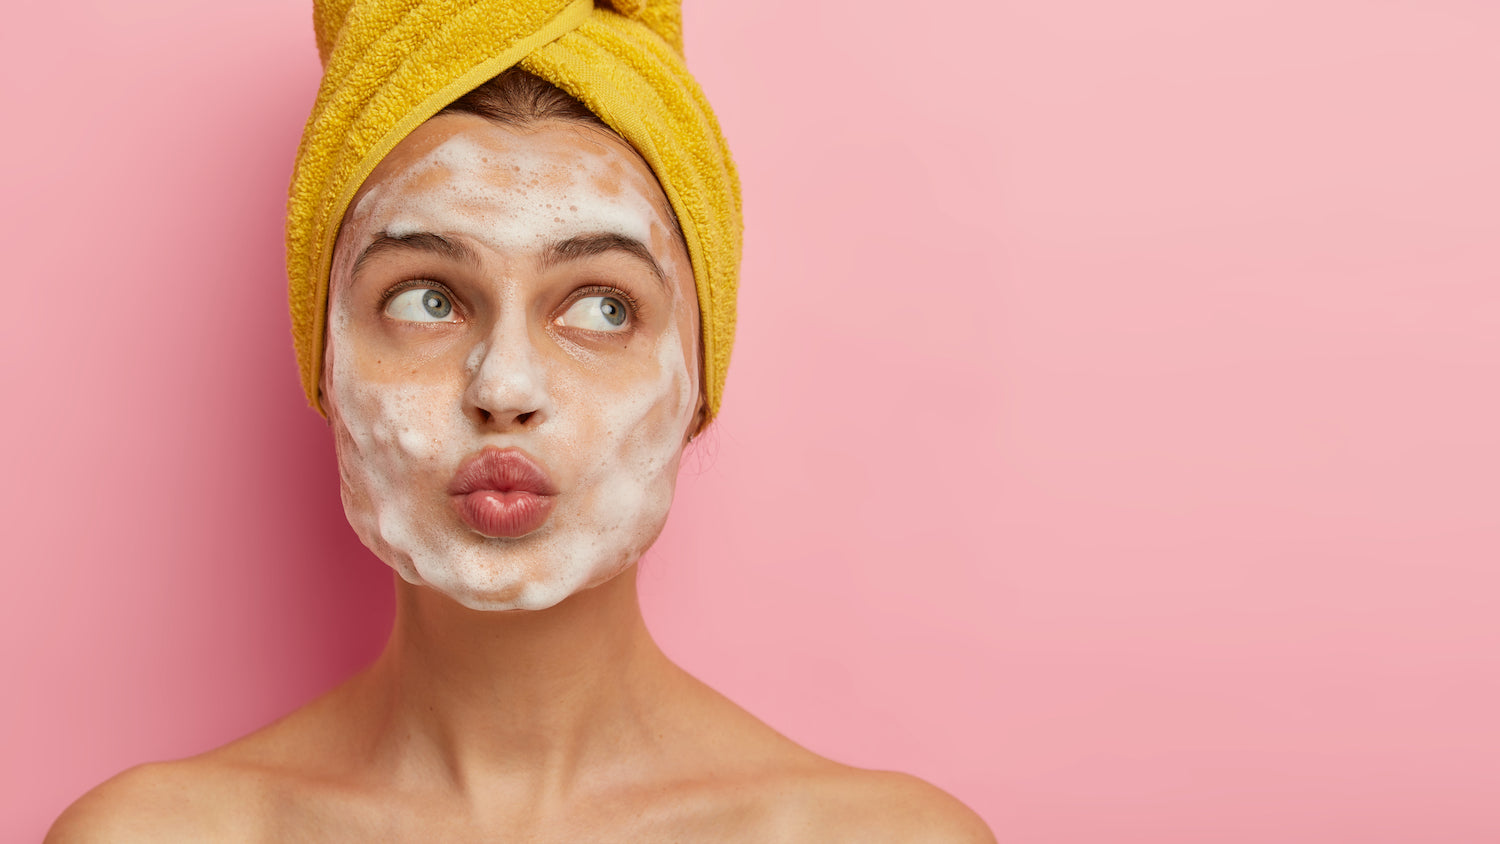 Our Top 3 Ways to Exfoliate